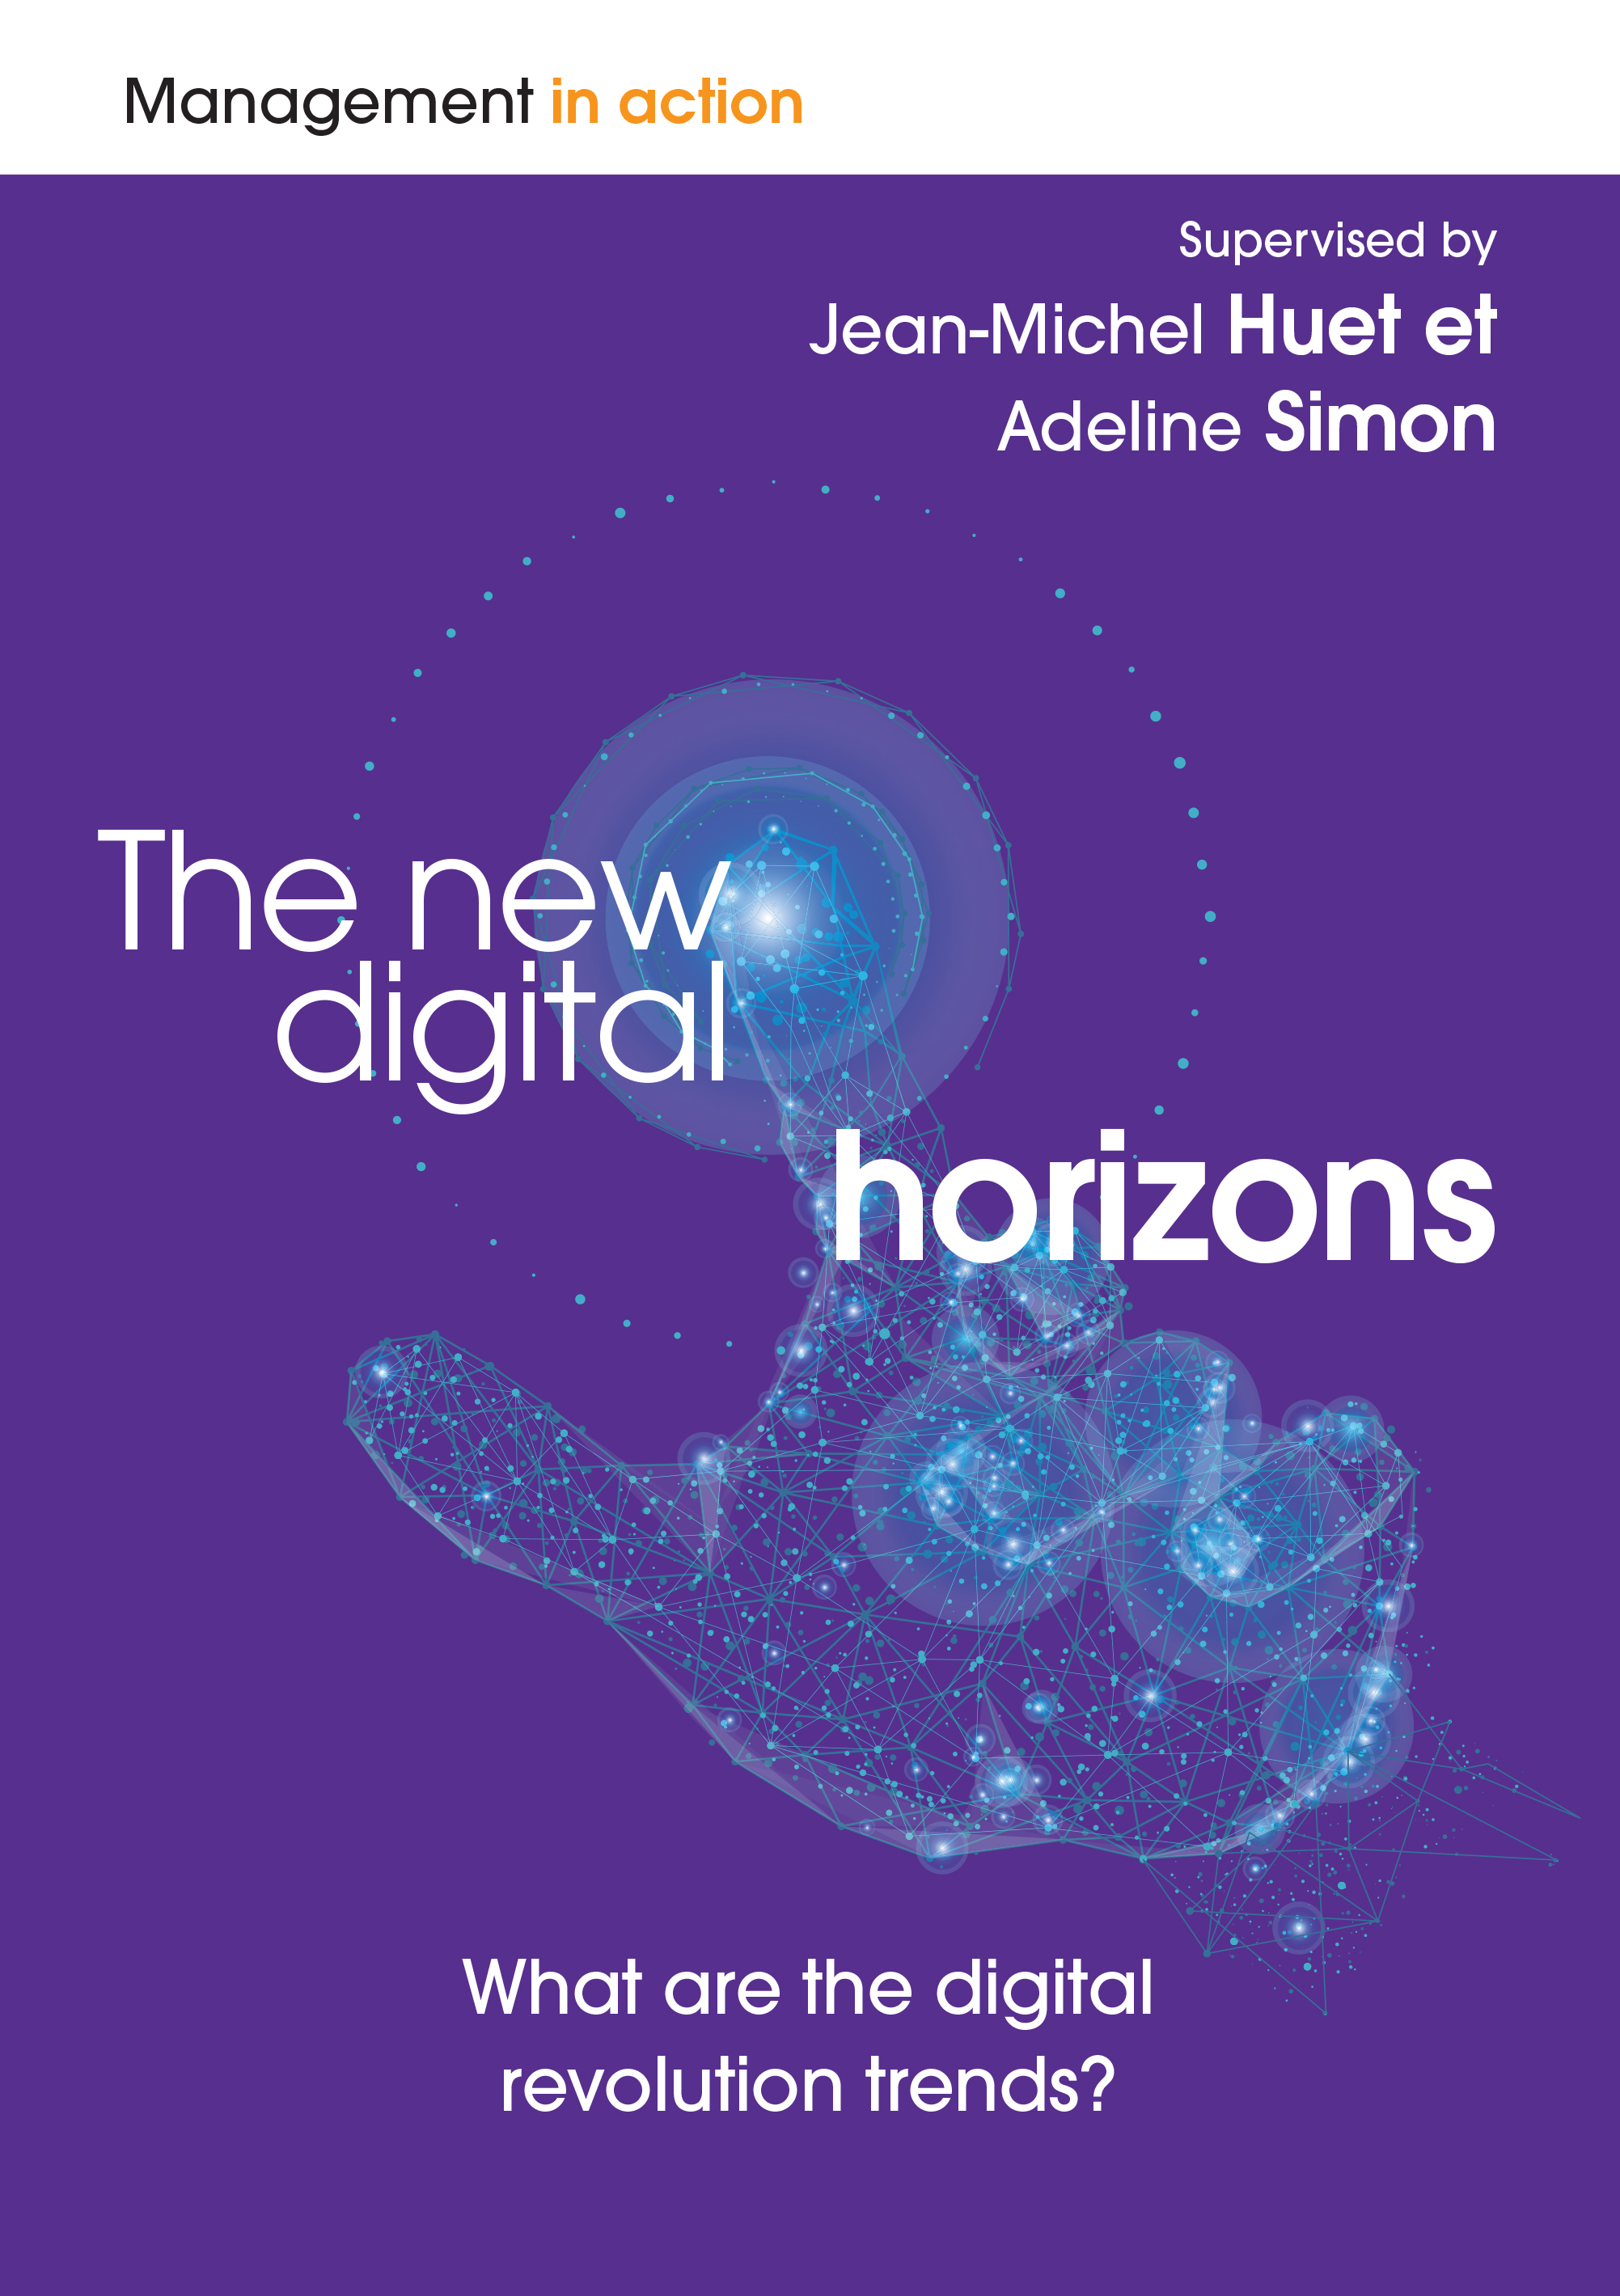 The new digital horizons De Adeline Simon et Jean-Michel Huet - Pearson